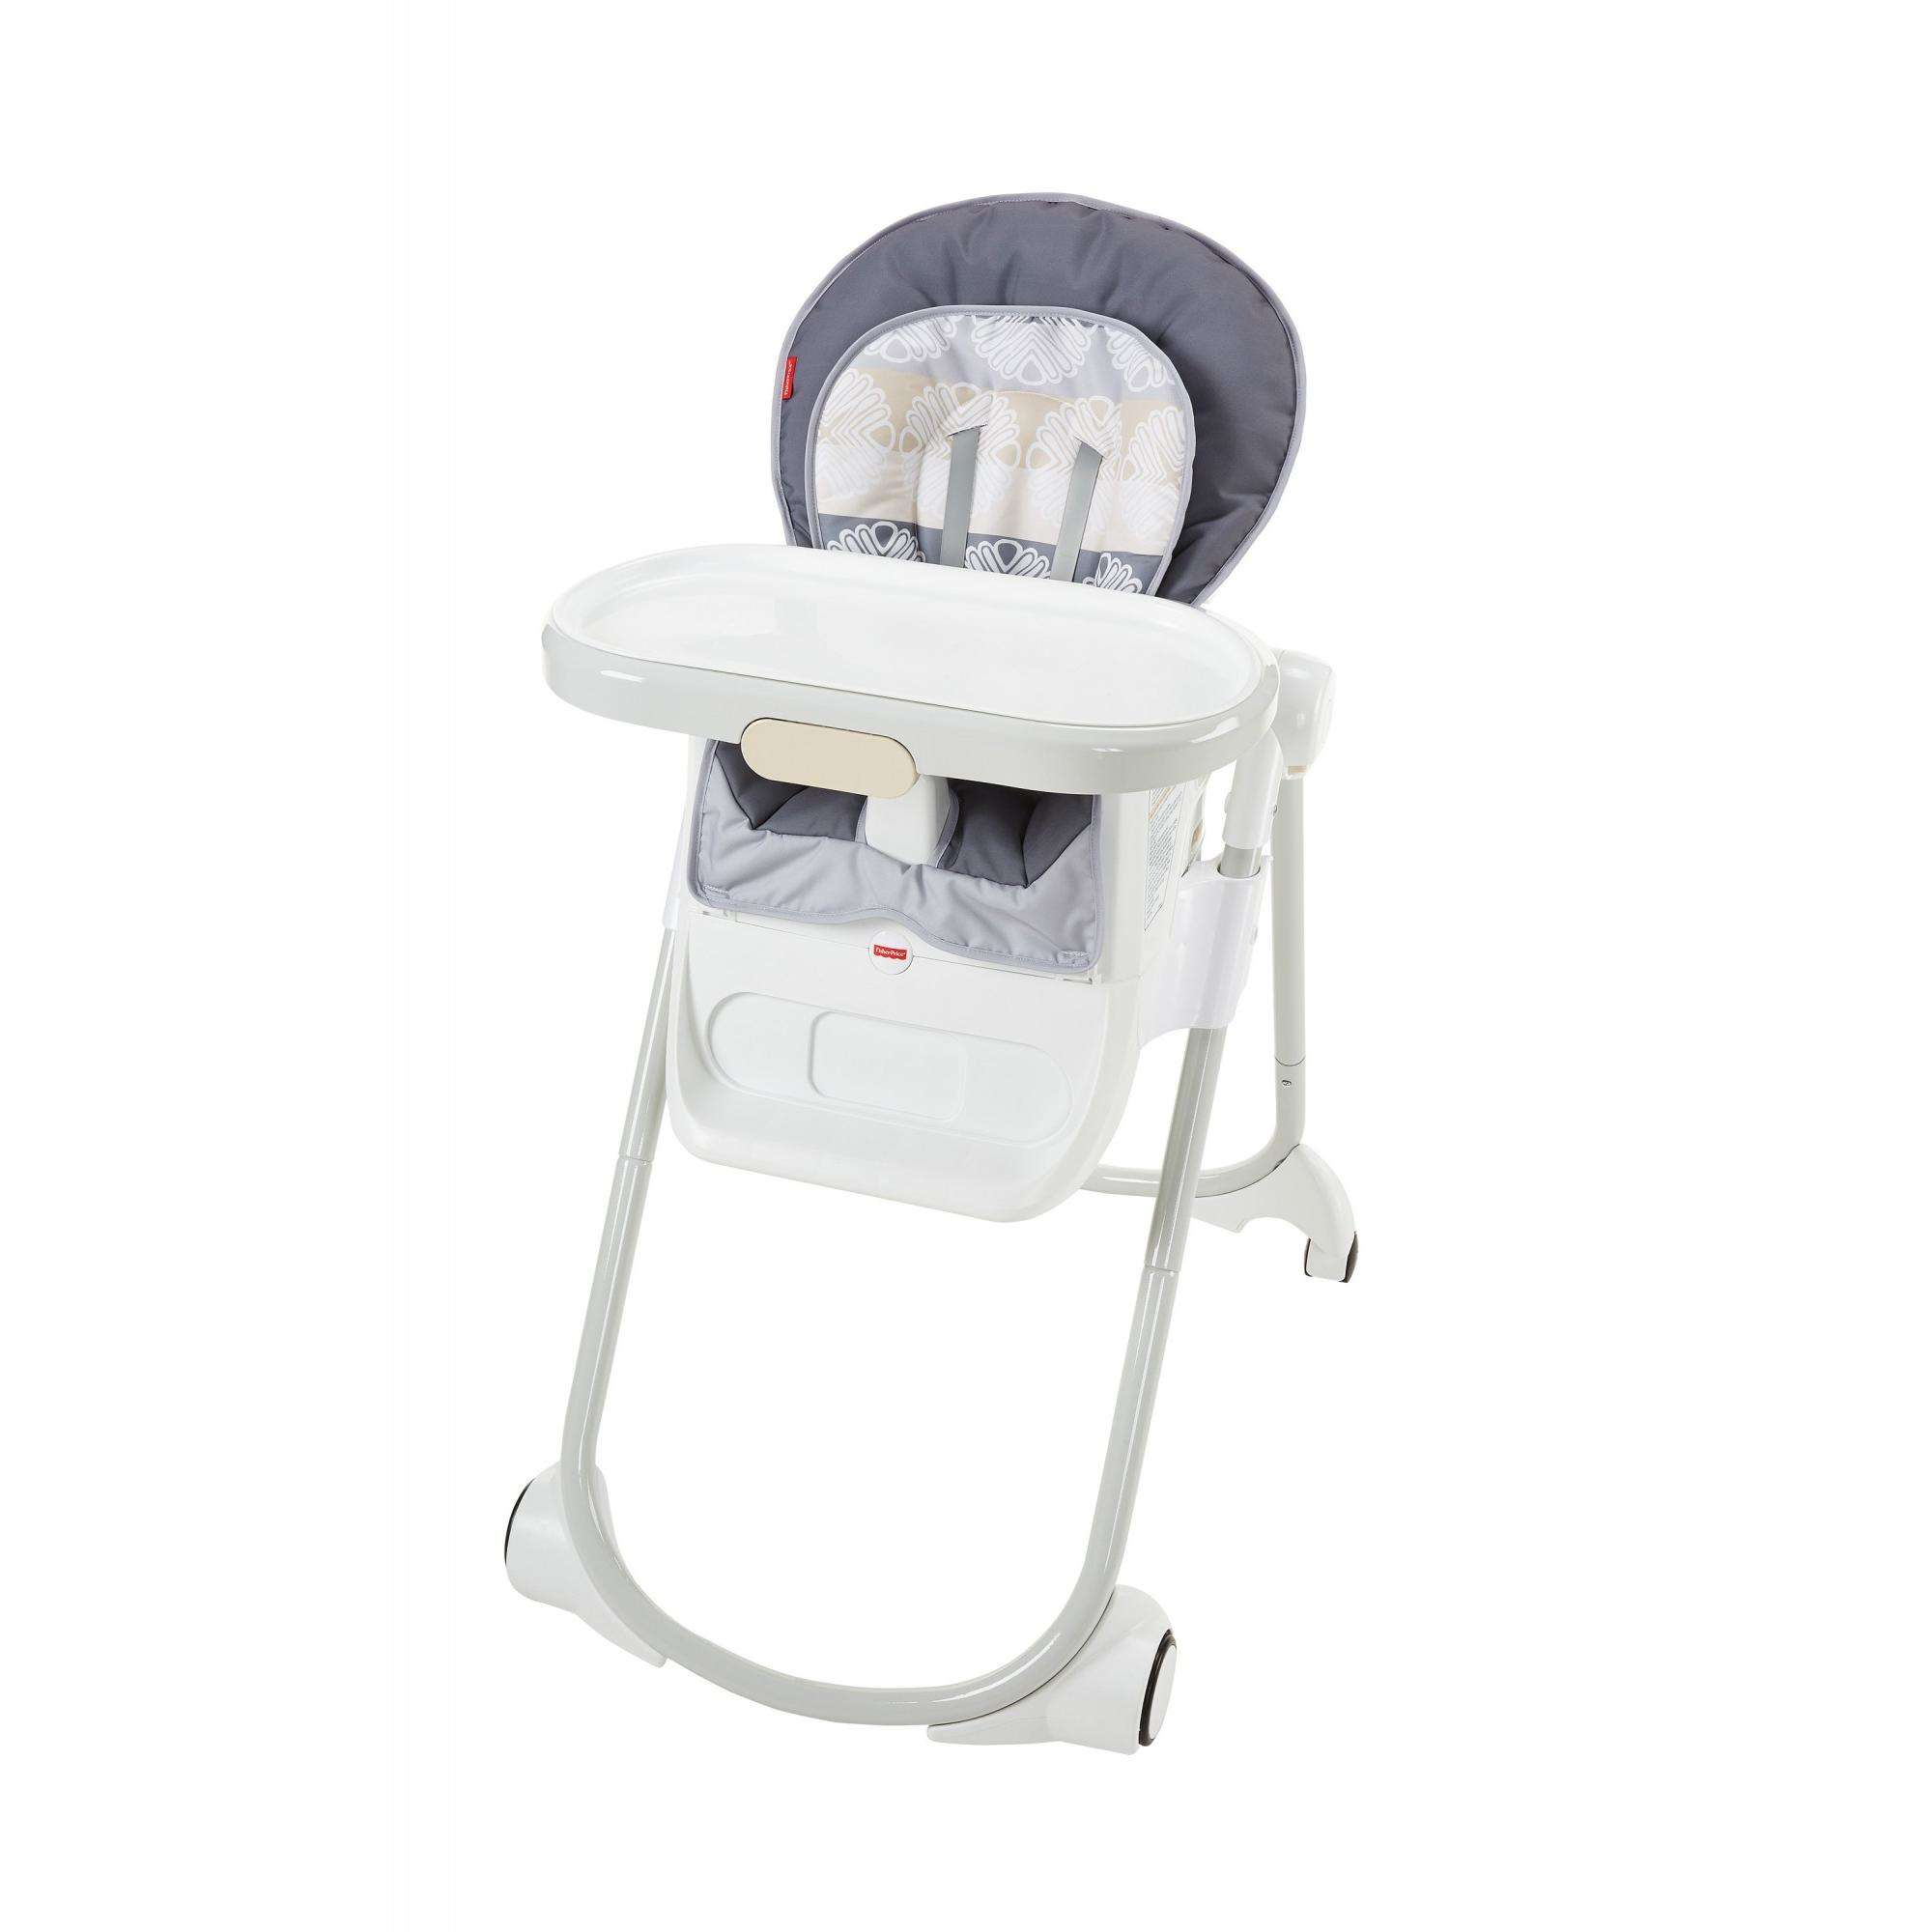 High Chair Fisher Price Fisher Price 4 In 1 Total Clean High Chair Walmart